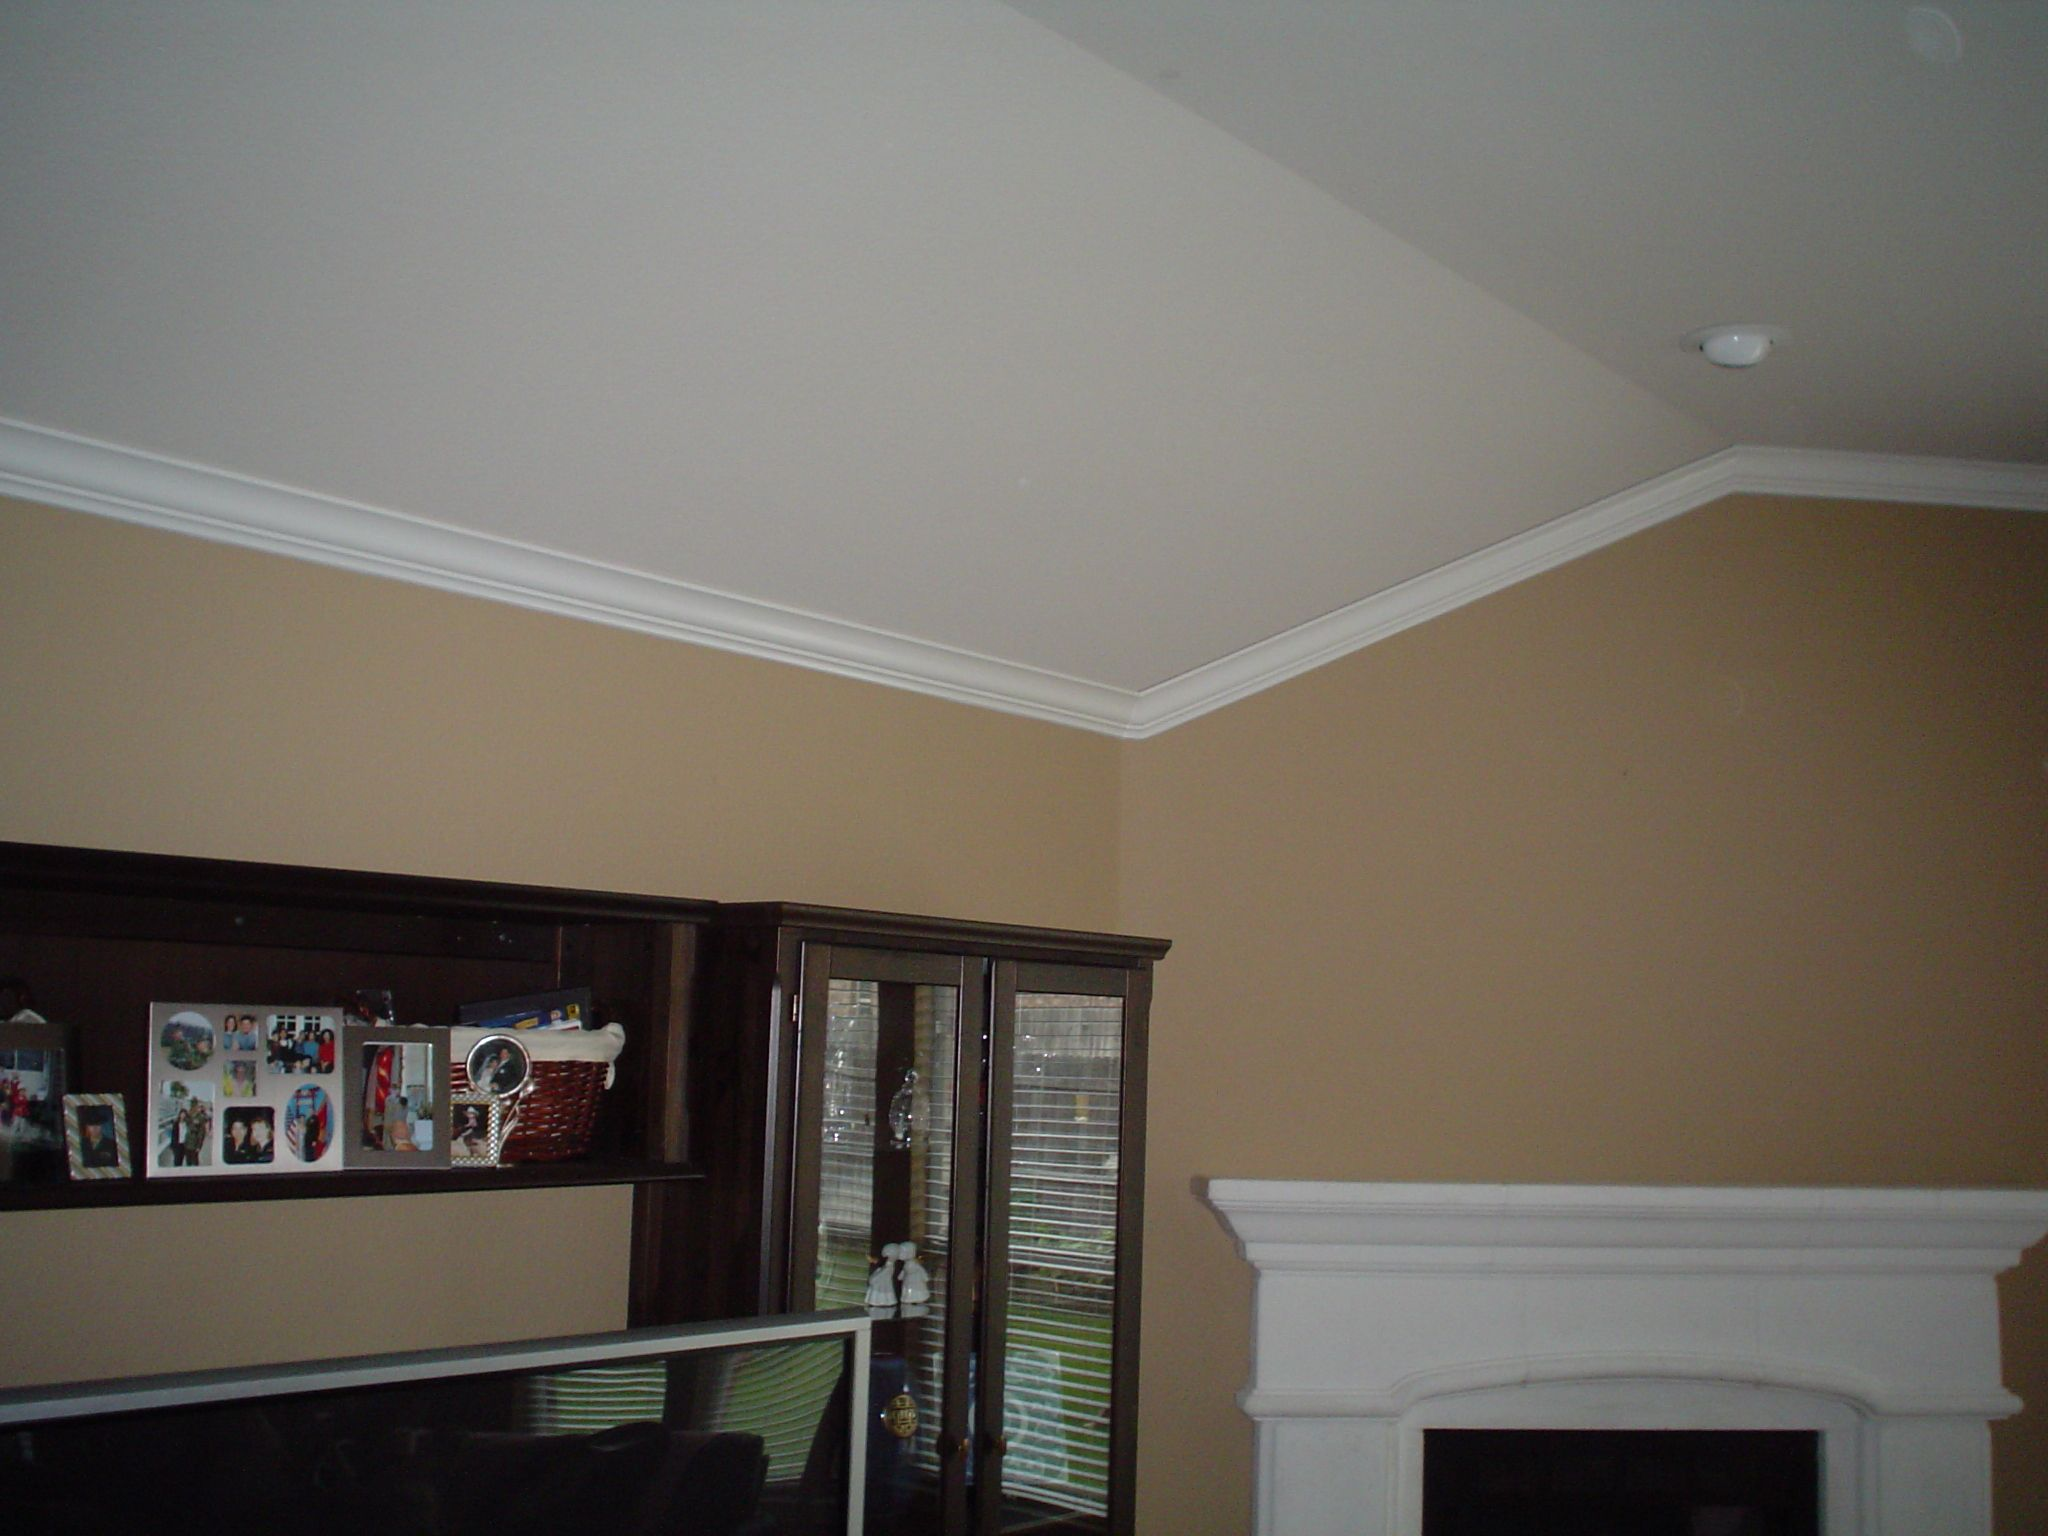 Crown molding for vaulted ceilings - 17 Best Images About Moldings Trim On Pinterest Grey Walls Vaulted Ceilings And Valance Ideas